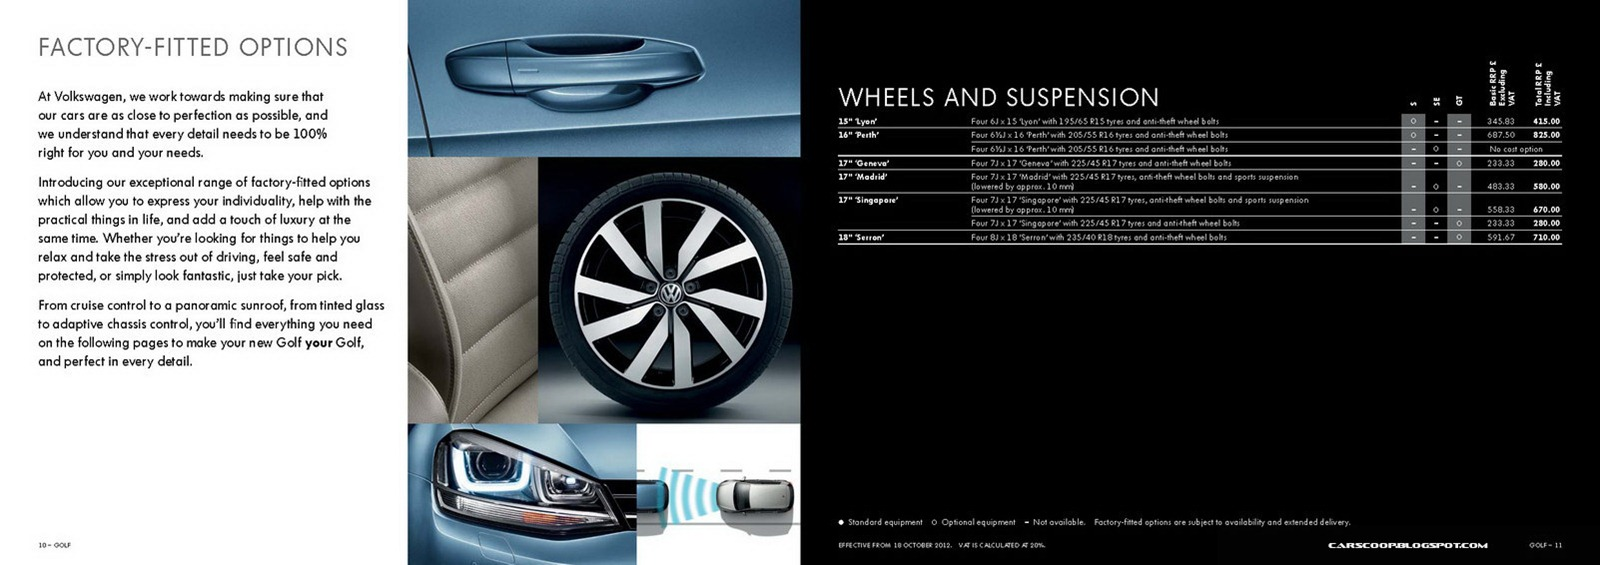 [Image: 2013-VW-Golf-UK-5CarScoop%25255B3%25255D.jpg]